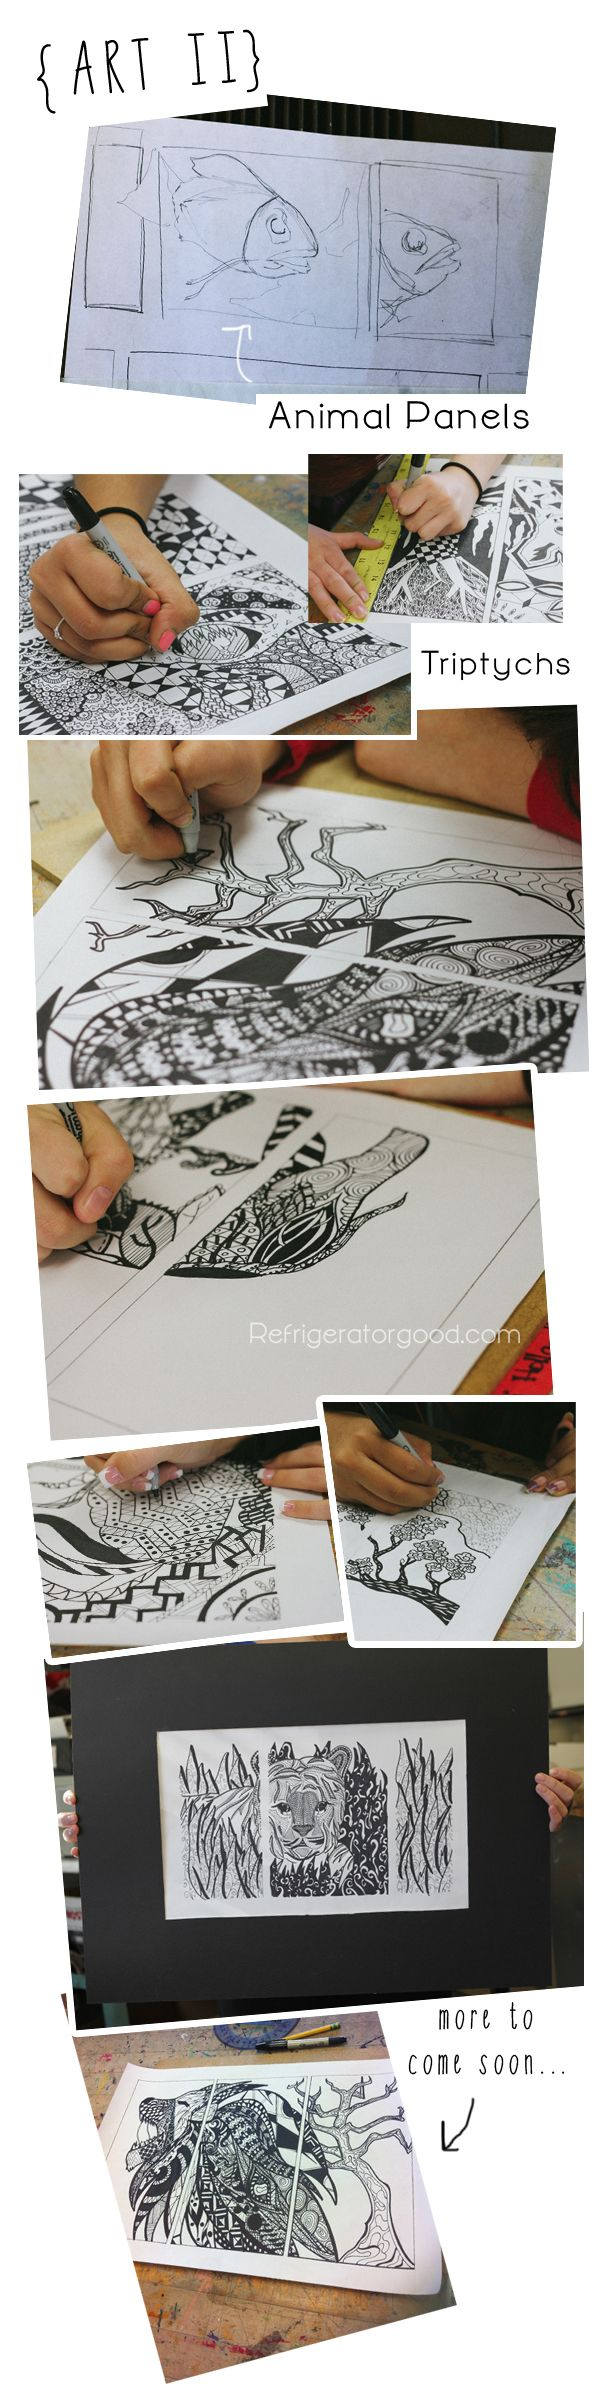 Line Design Art Lesson : Best images about art lesson ideas drawing on pinterest